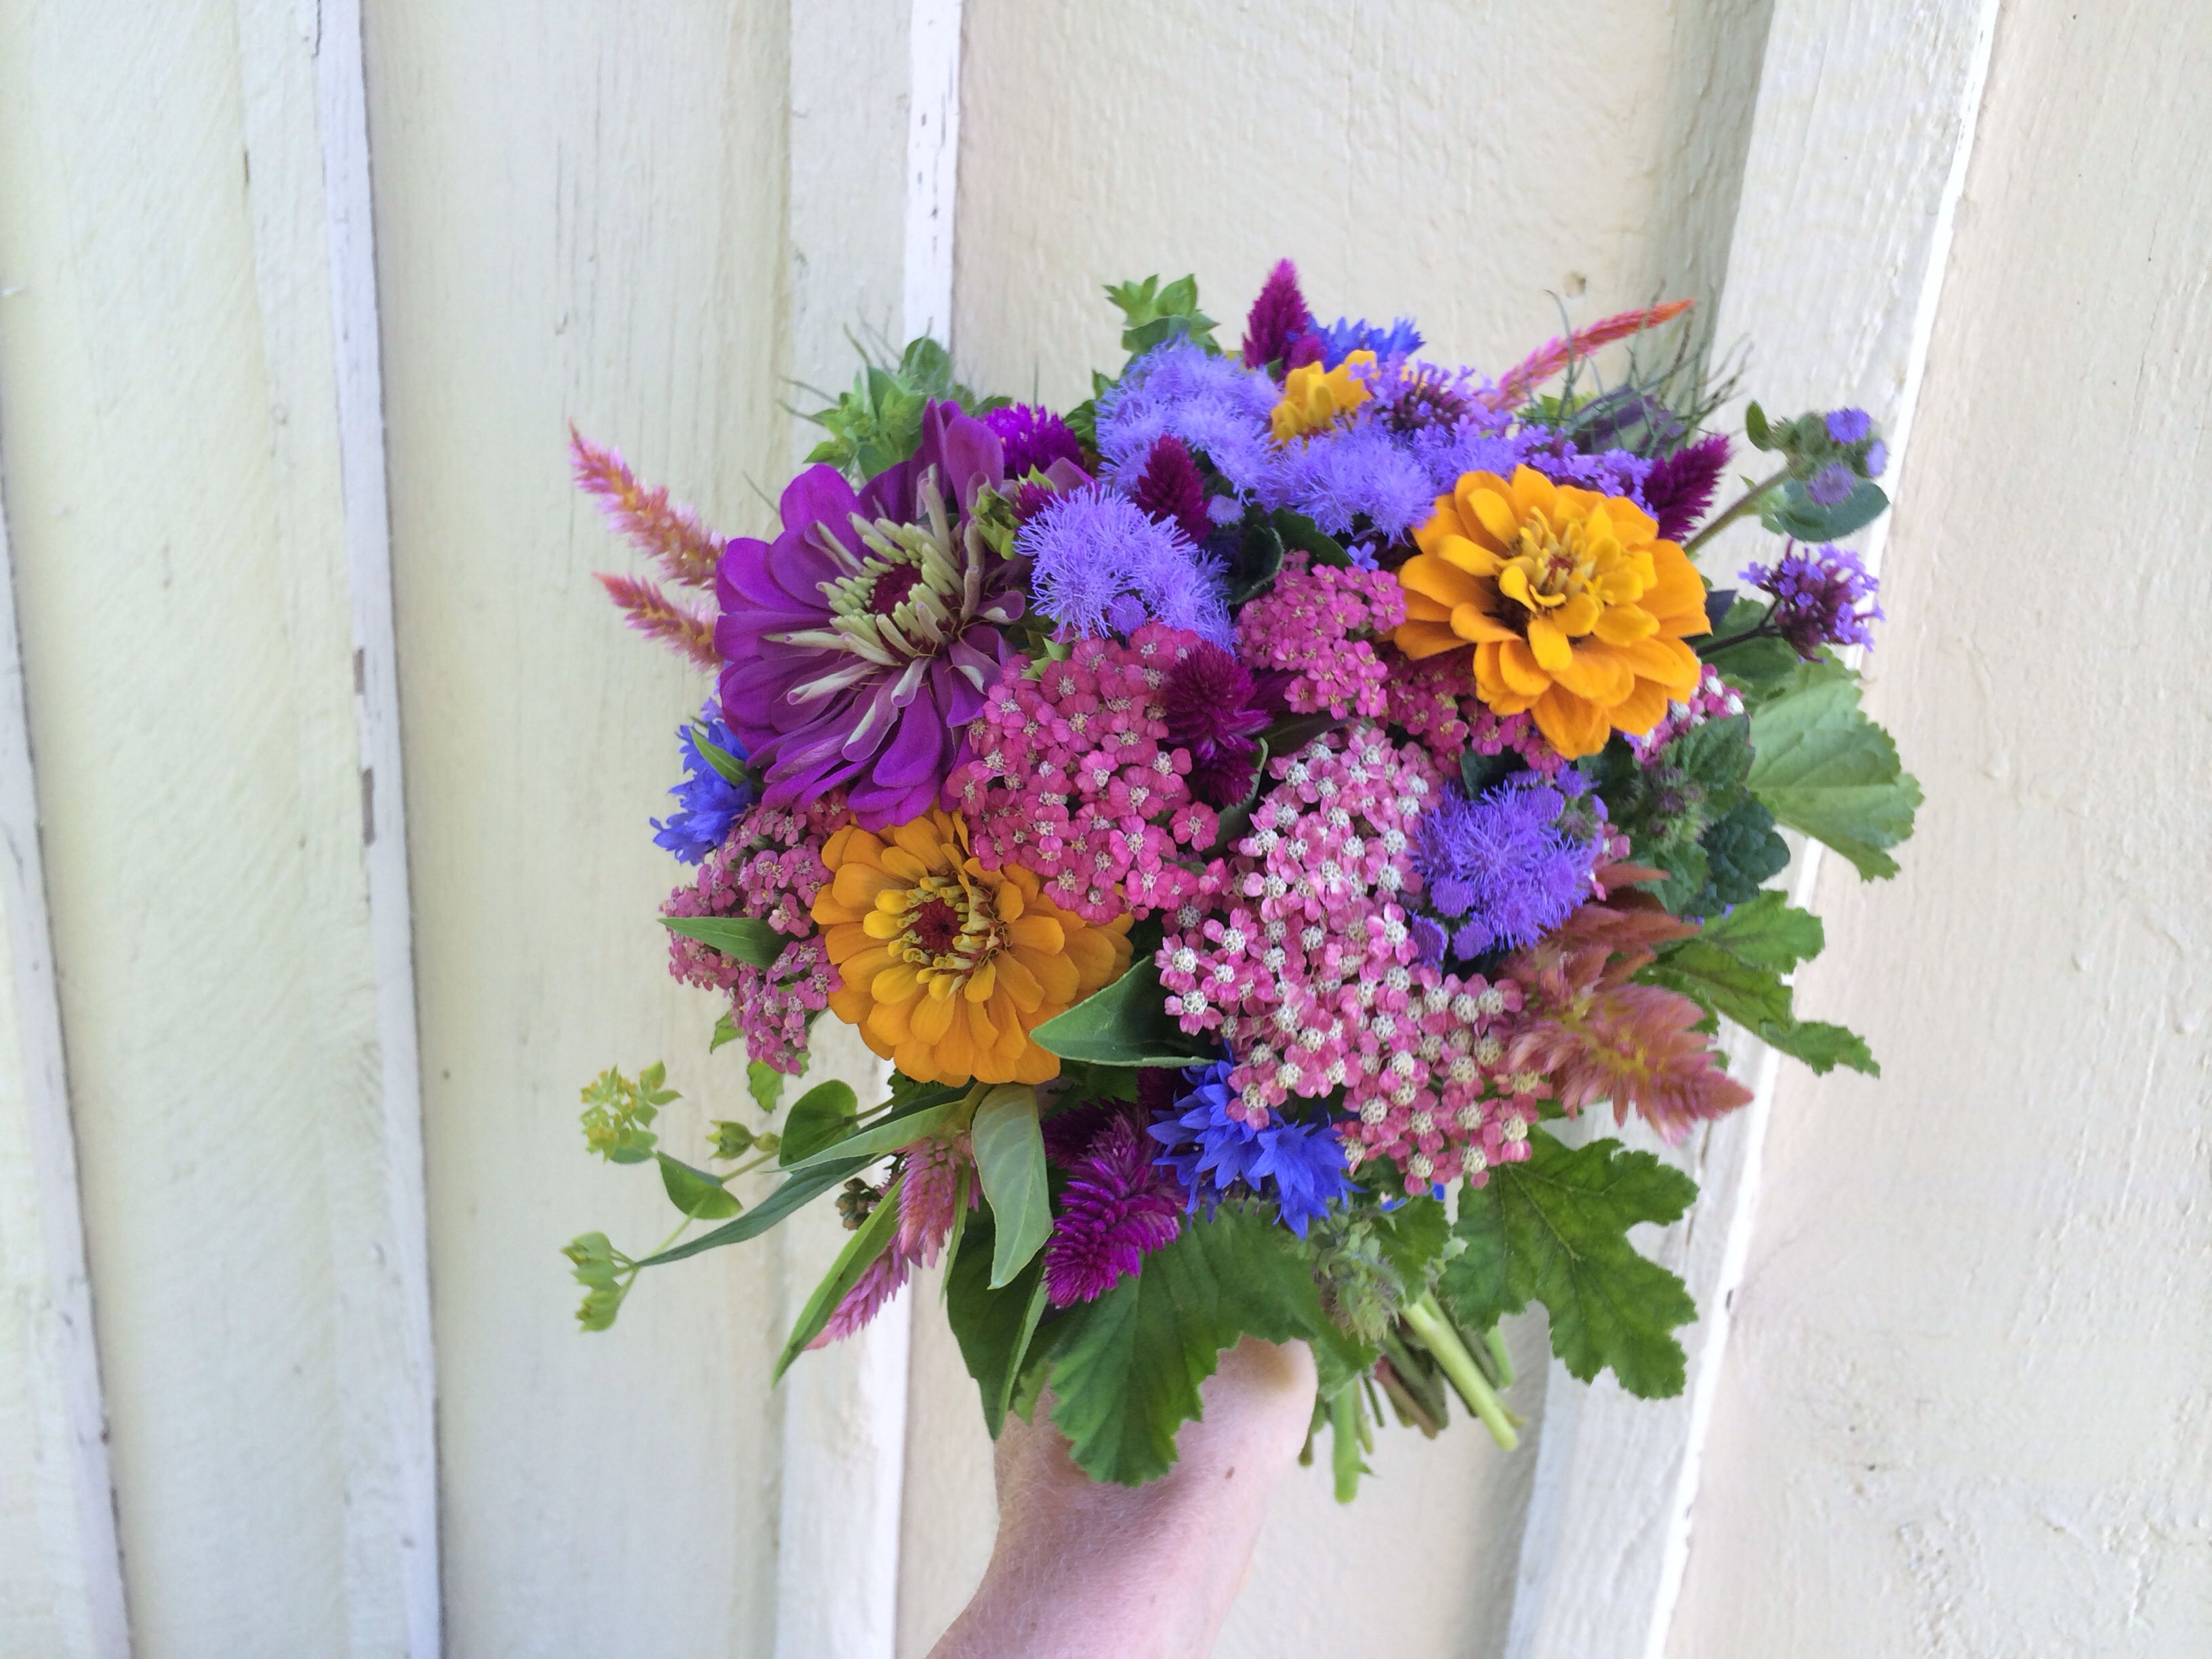 August Wedding Bridesmaid Bouquet Zinnia Strawflower Yarrow And More Aster B Flowers Flower Farm August Flowers Flower Farm Wedding Bridesmaid Bouquets